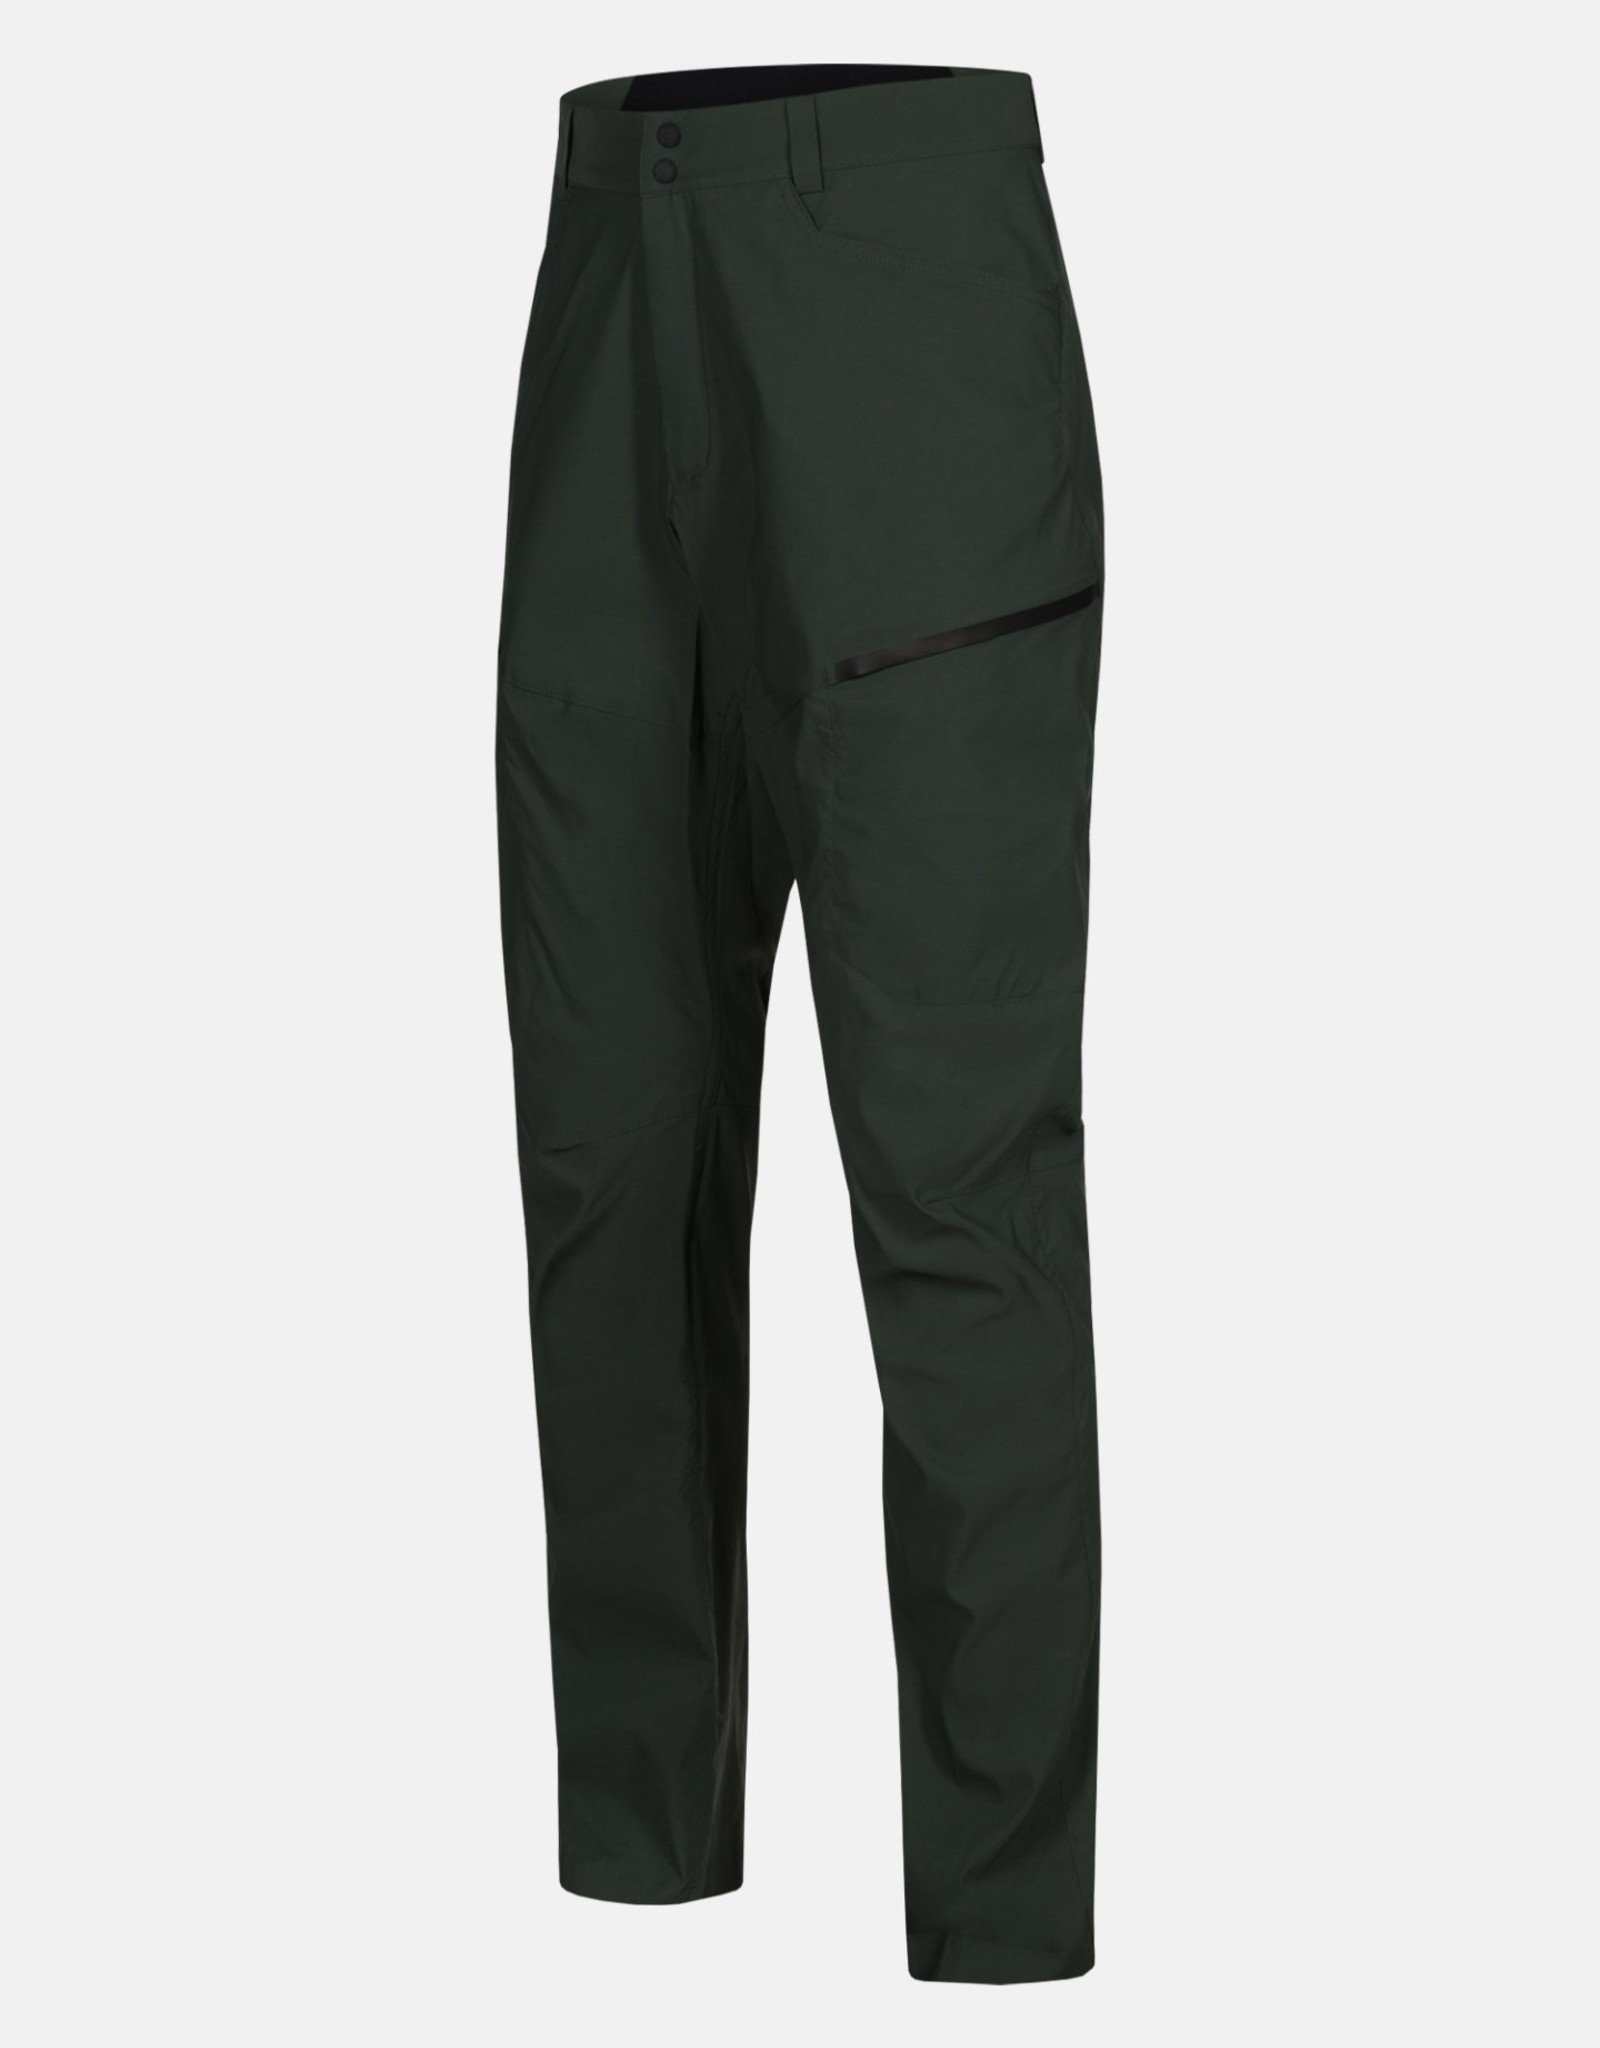 Peak Performance Peak Performance Men's Iconiq Cargo Pant - S2020